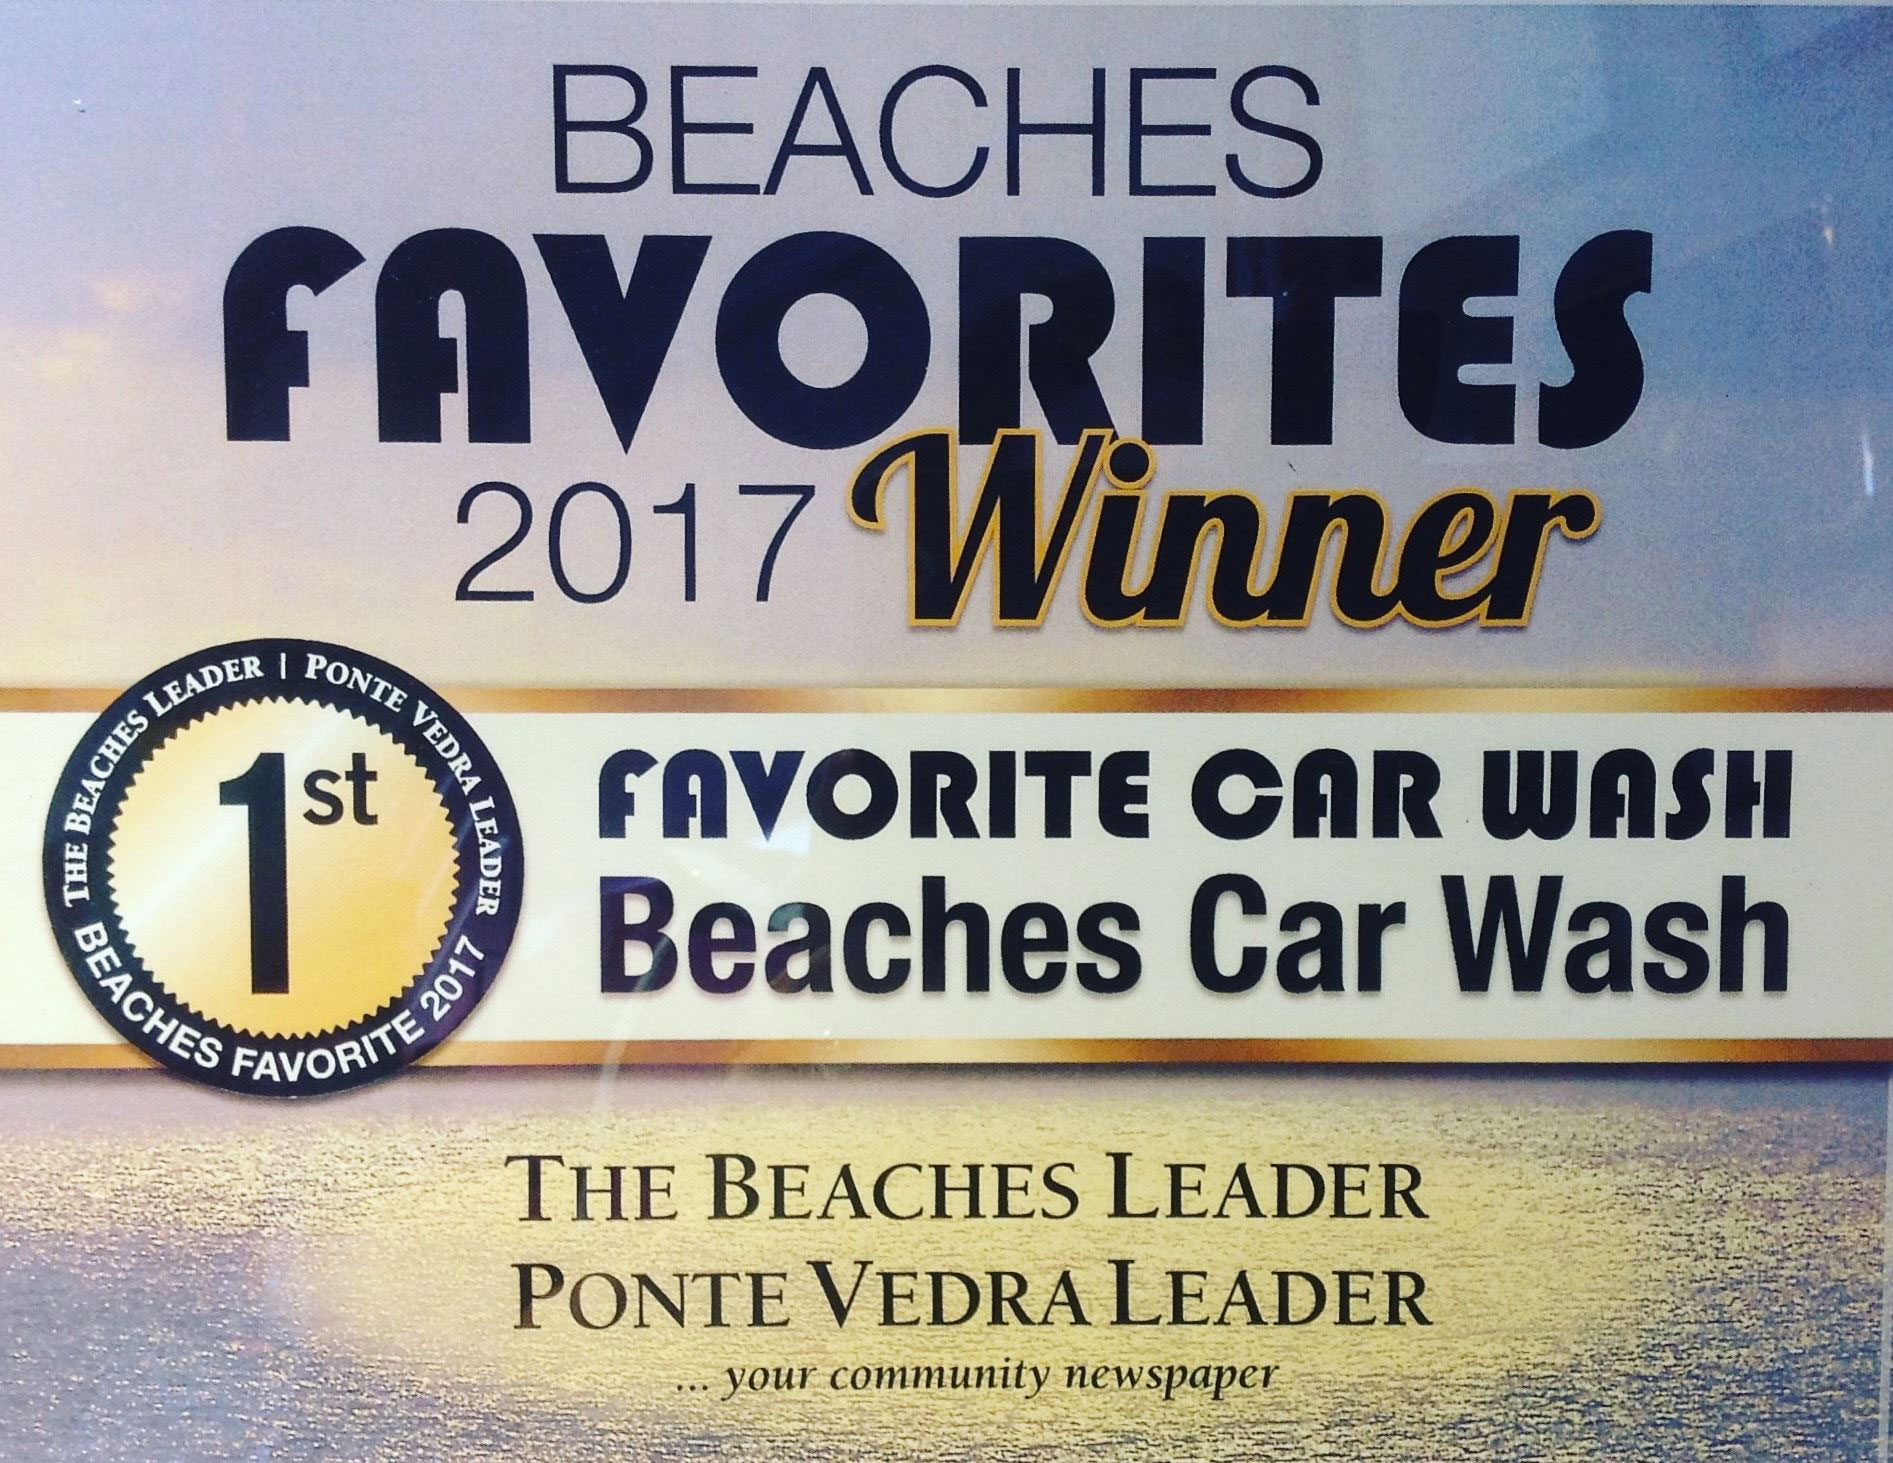 BCW Voted Favorite Car Wash 2017